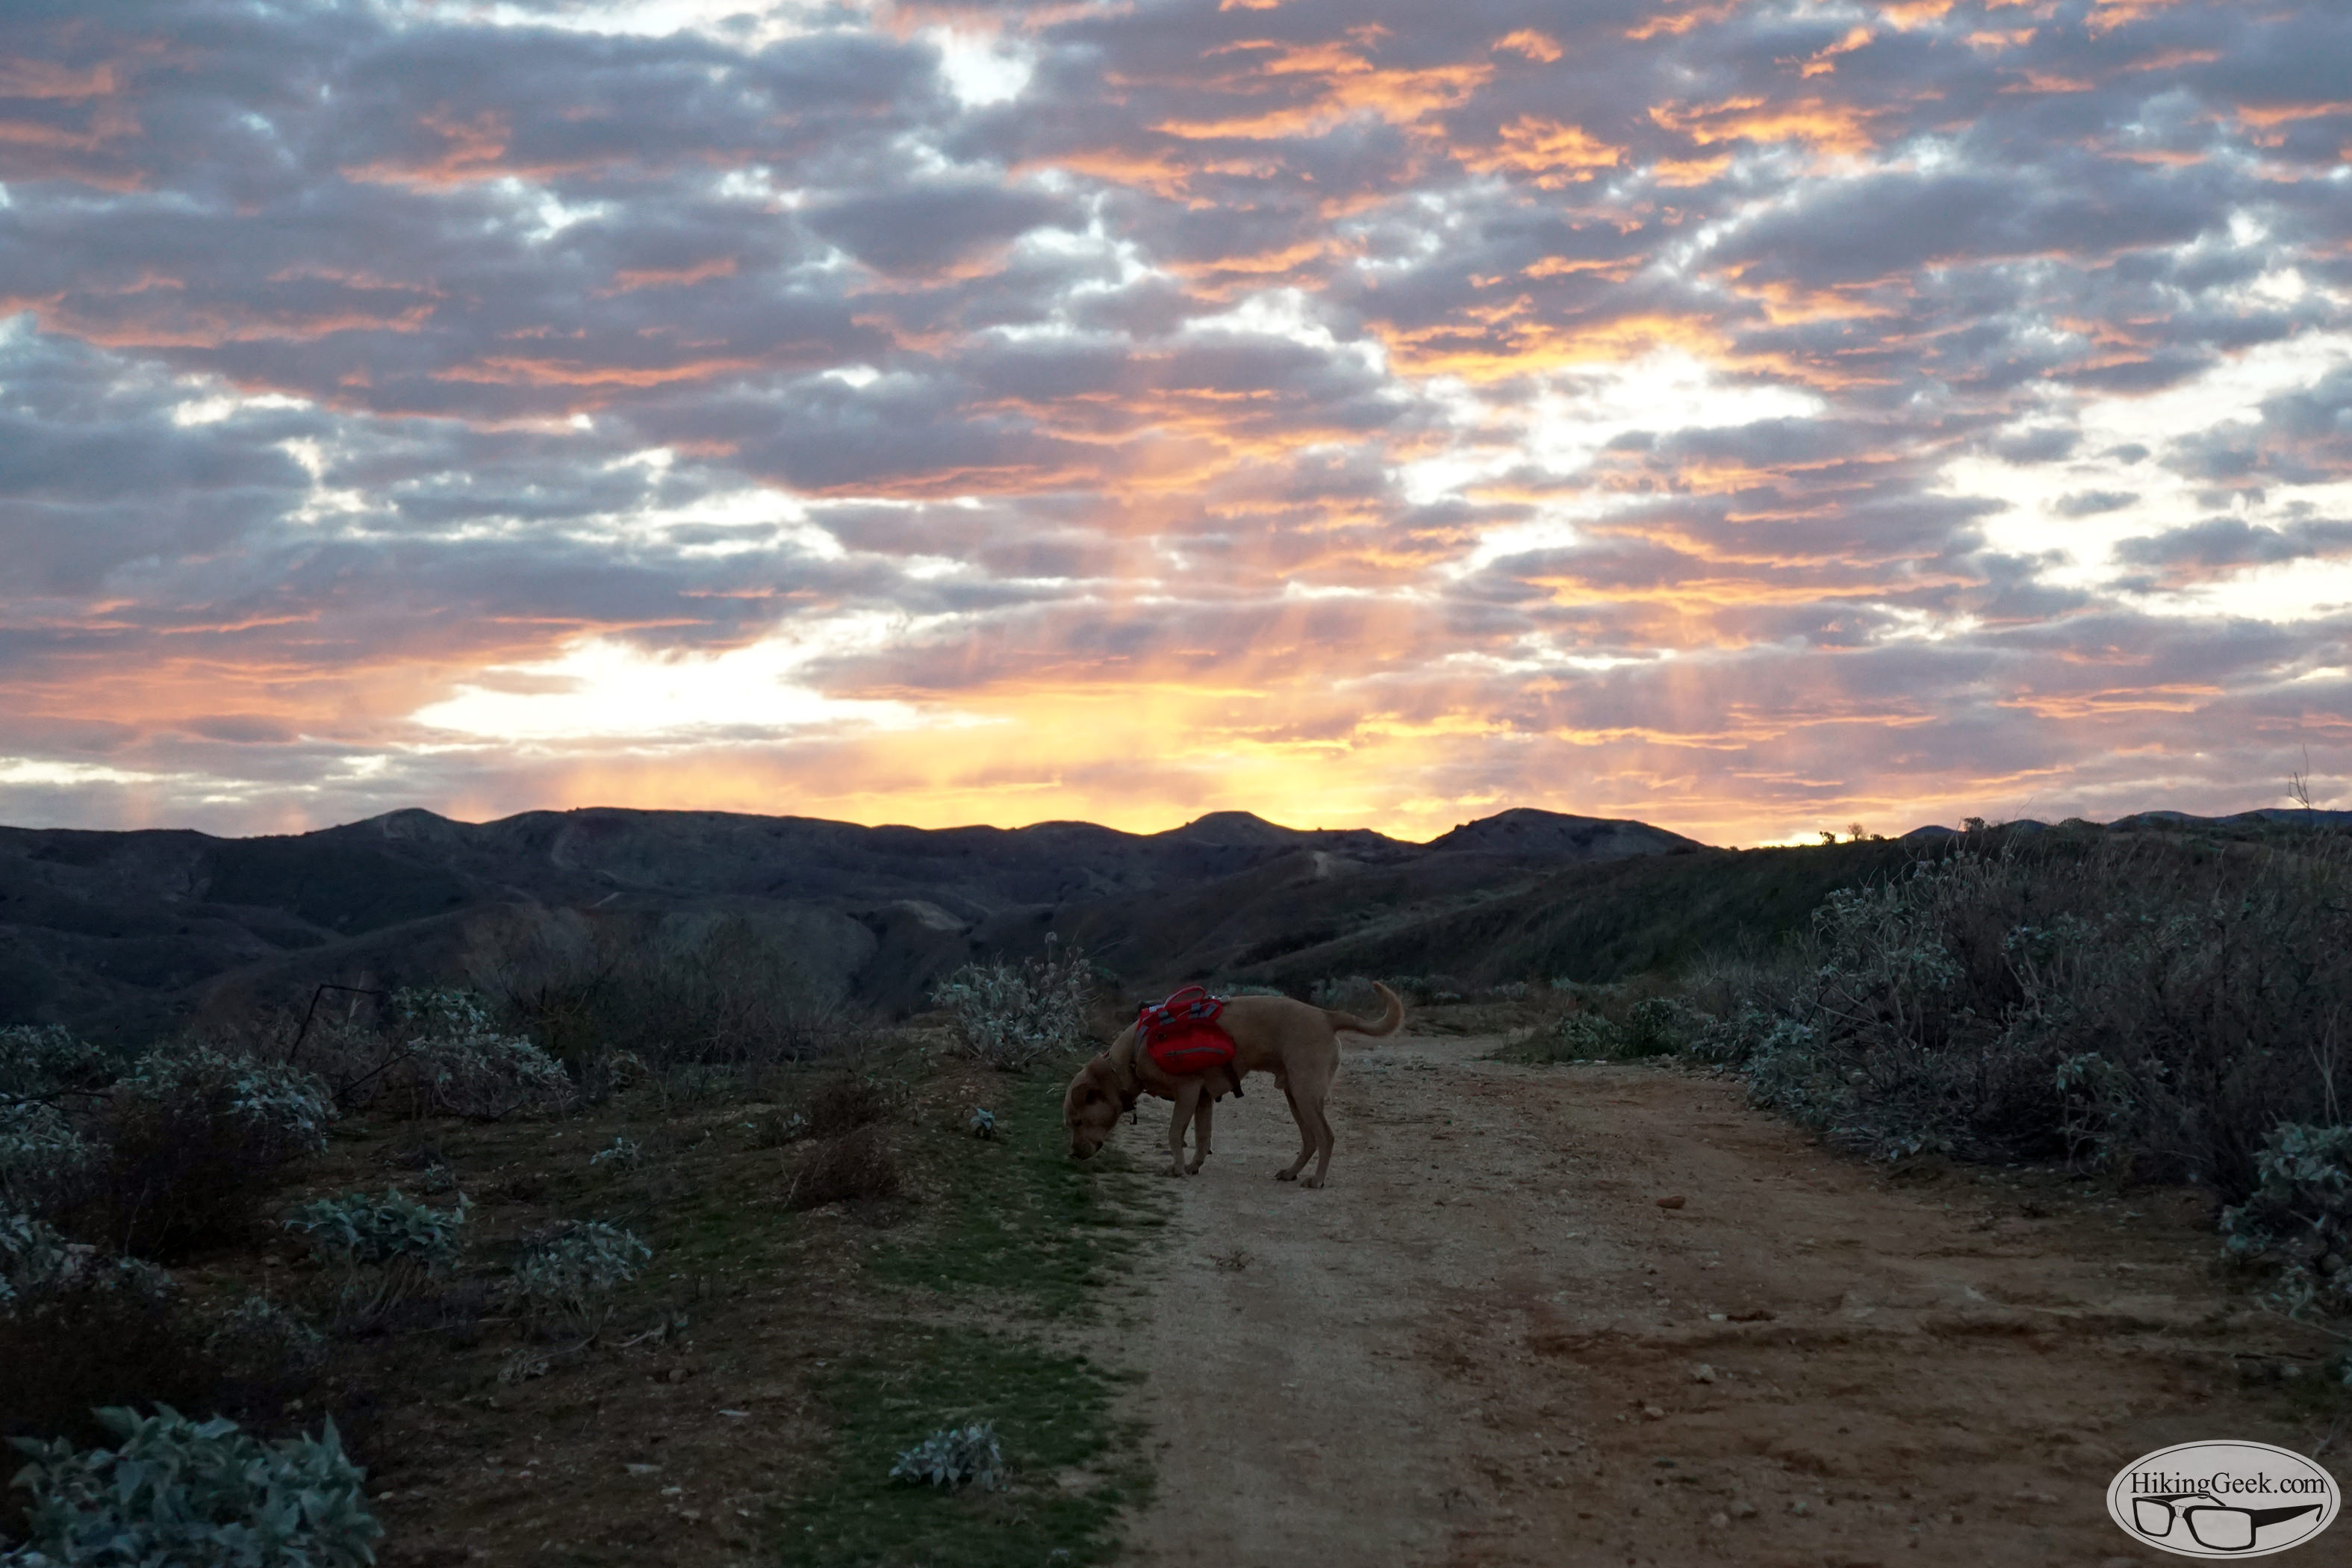 Hiking with Dogs: Training Hike & Gear Testing (Prado Lane), January 3 2016